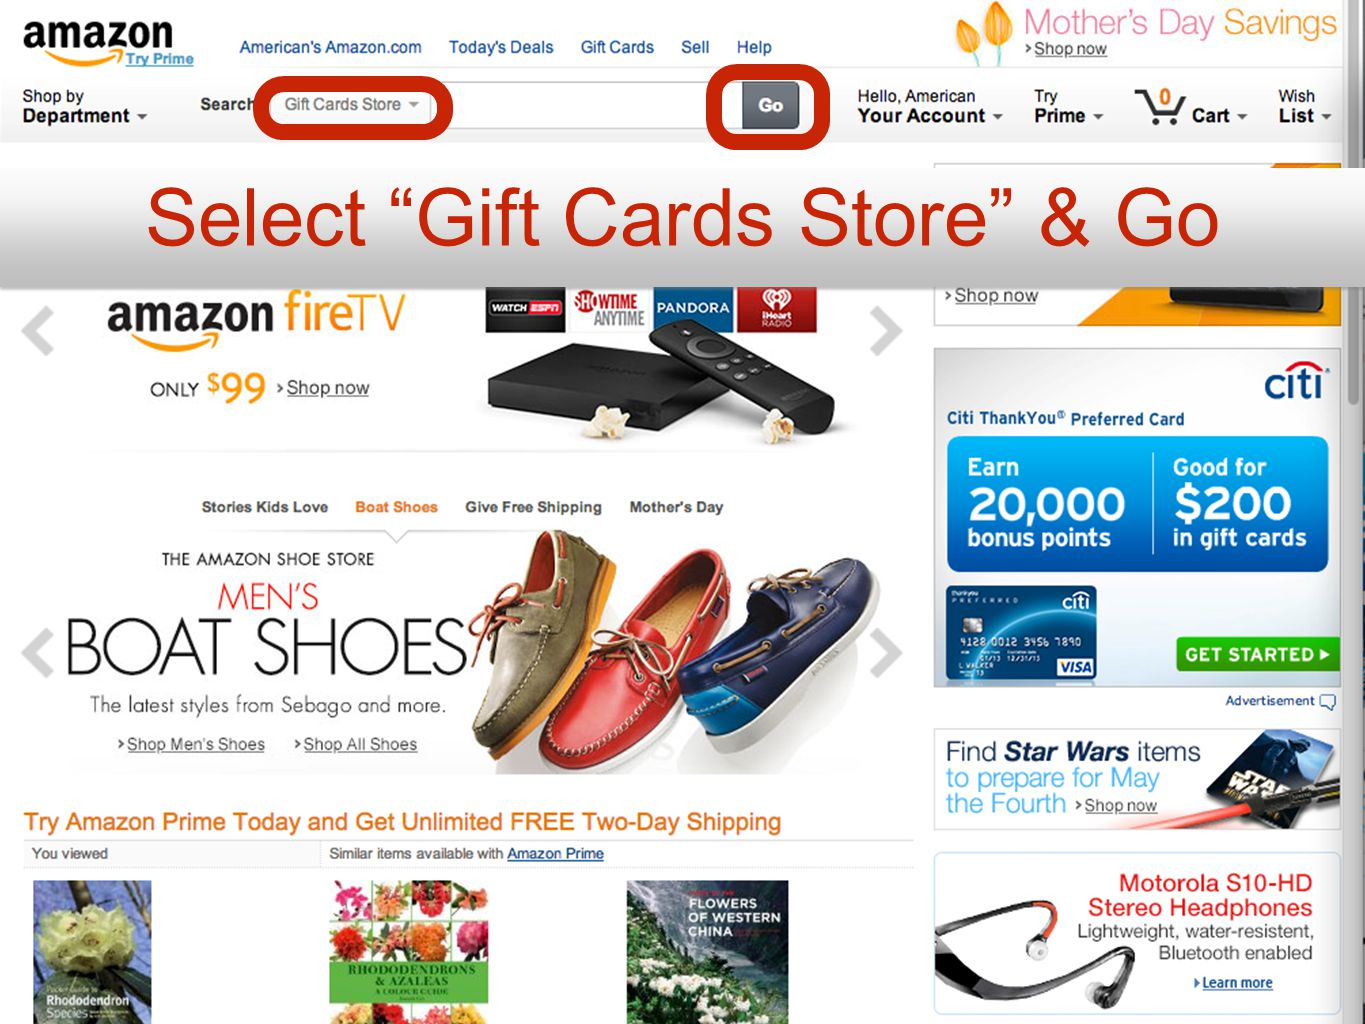 Select Gift Cards Store & Go